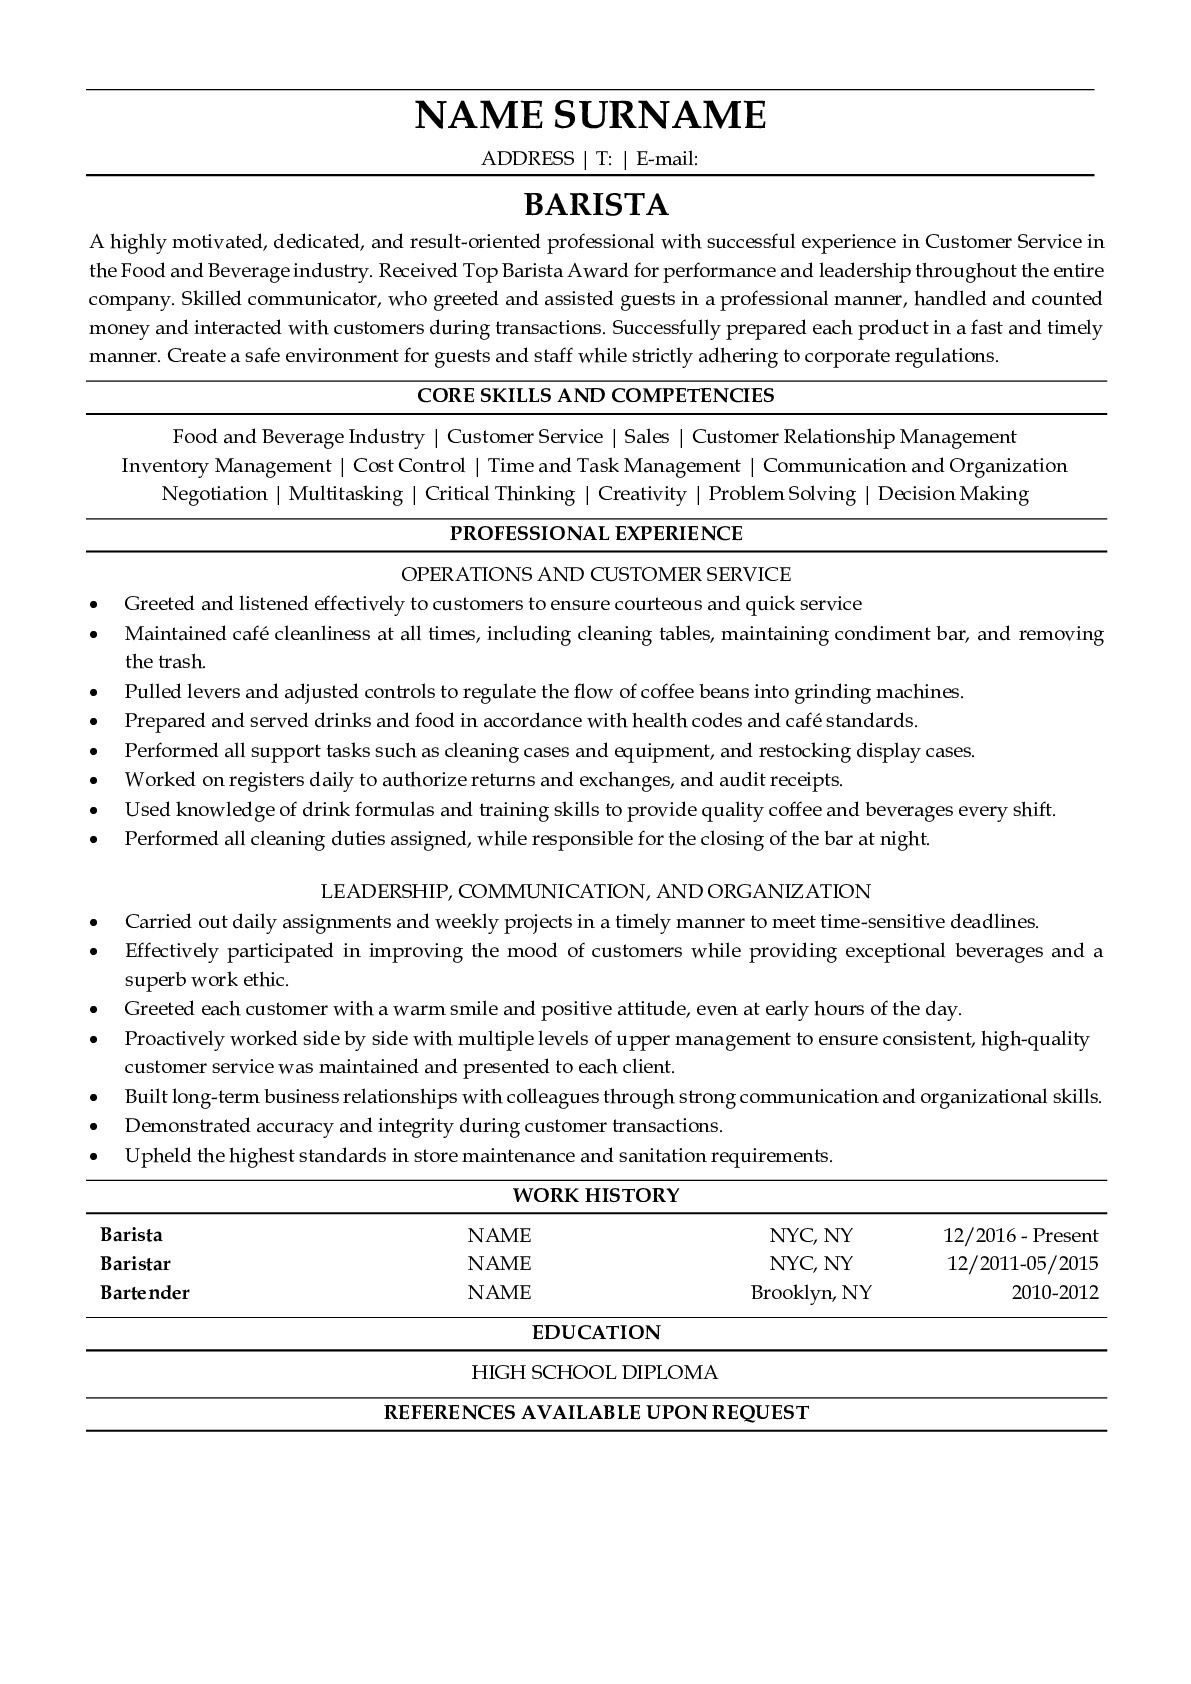 Resume Example for Barista